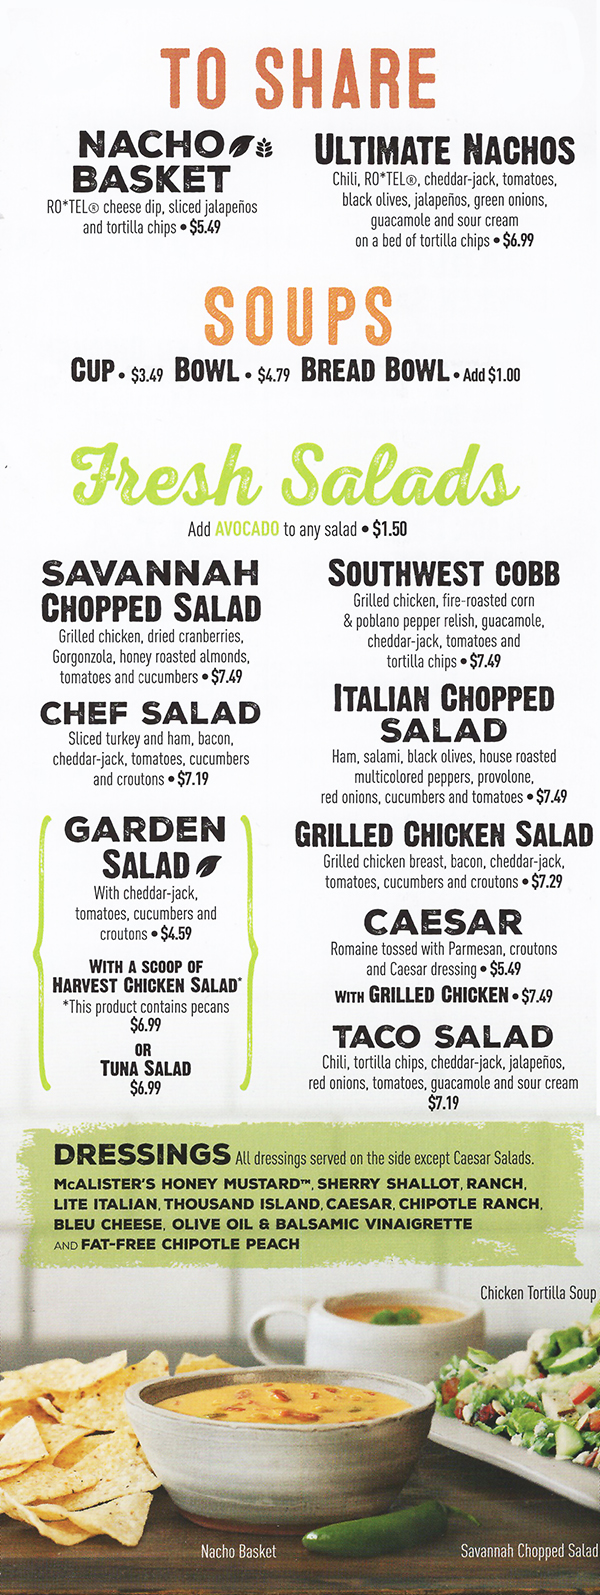 Sly image with regard to mcalisters deli printable menu